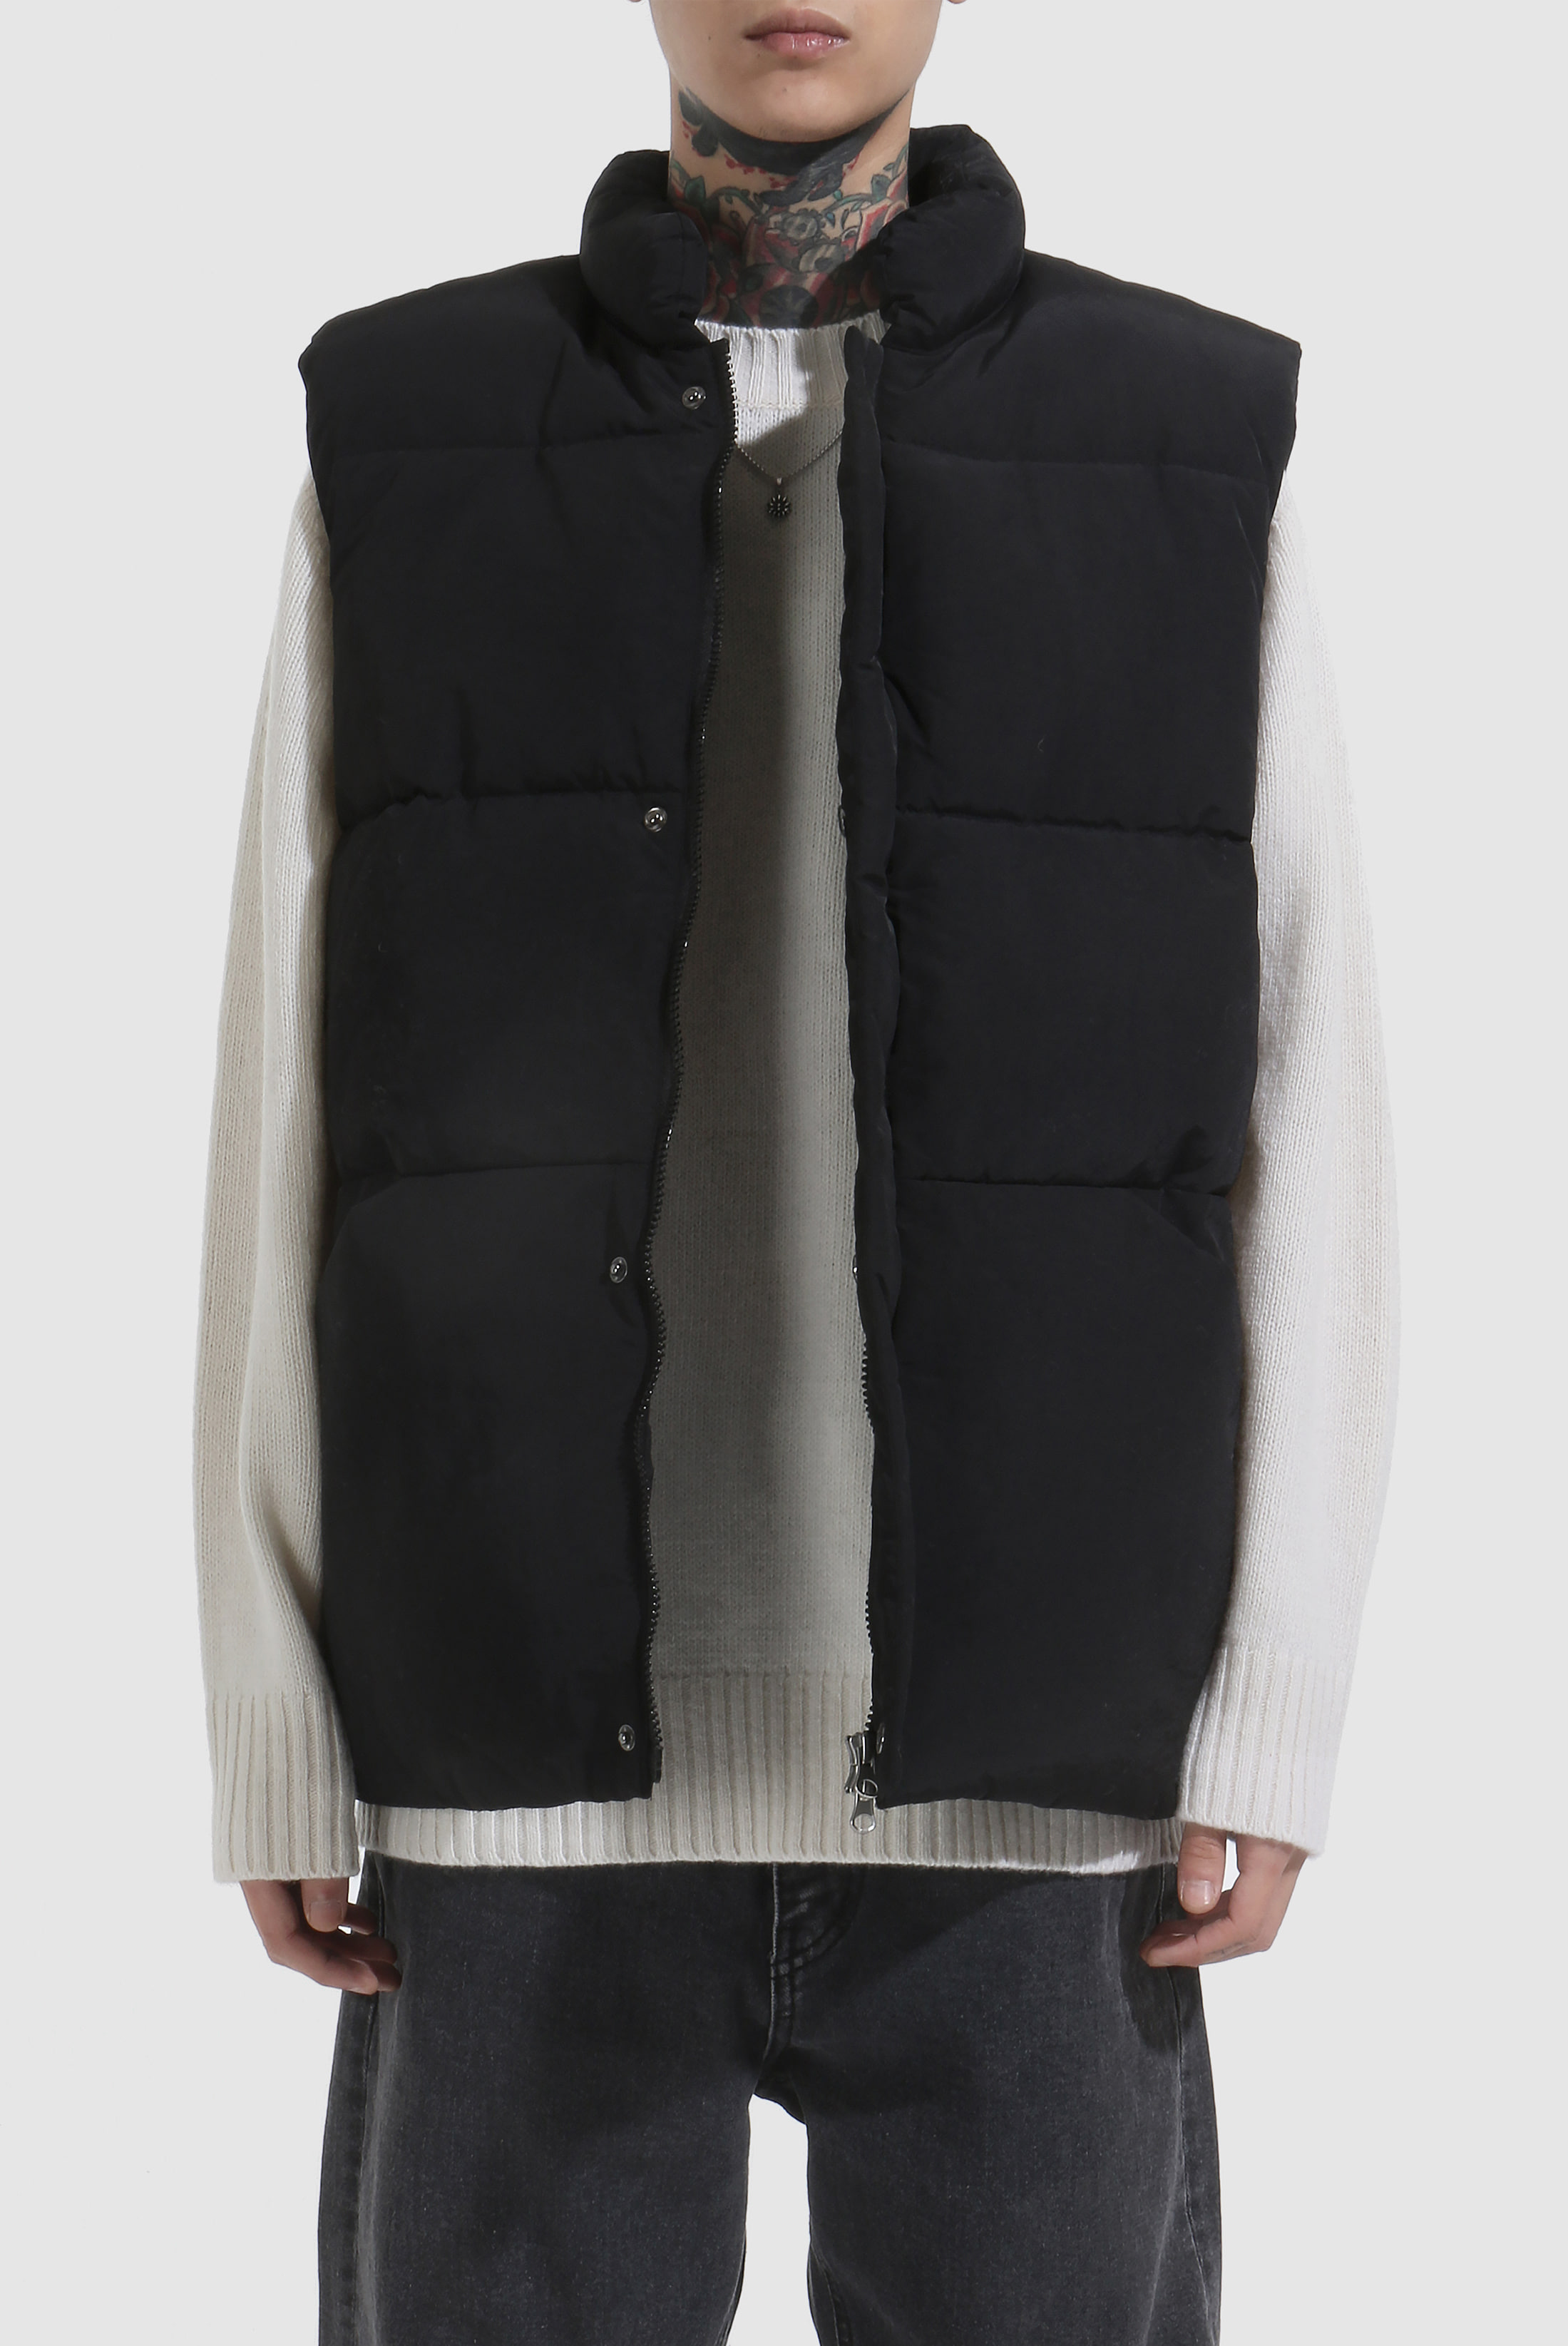 Volum_Padding Vest_Jacket